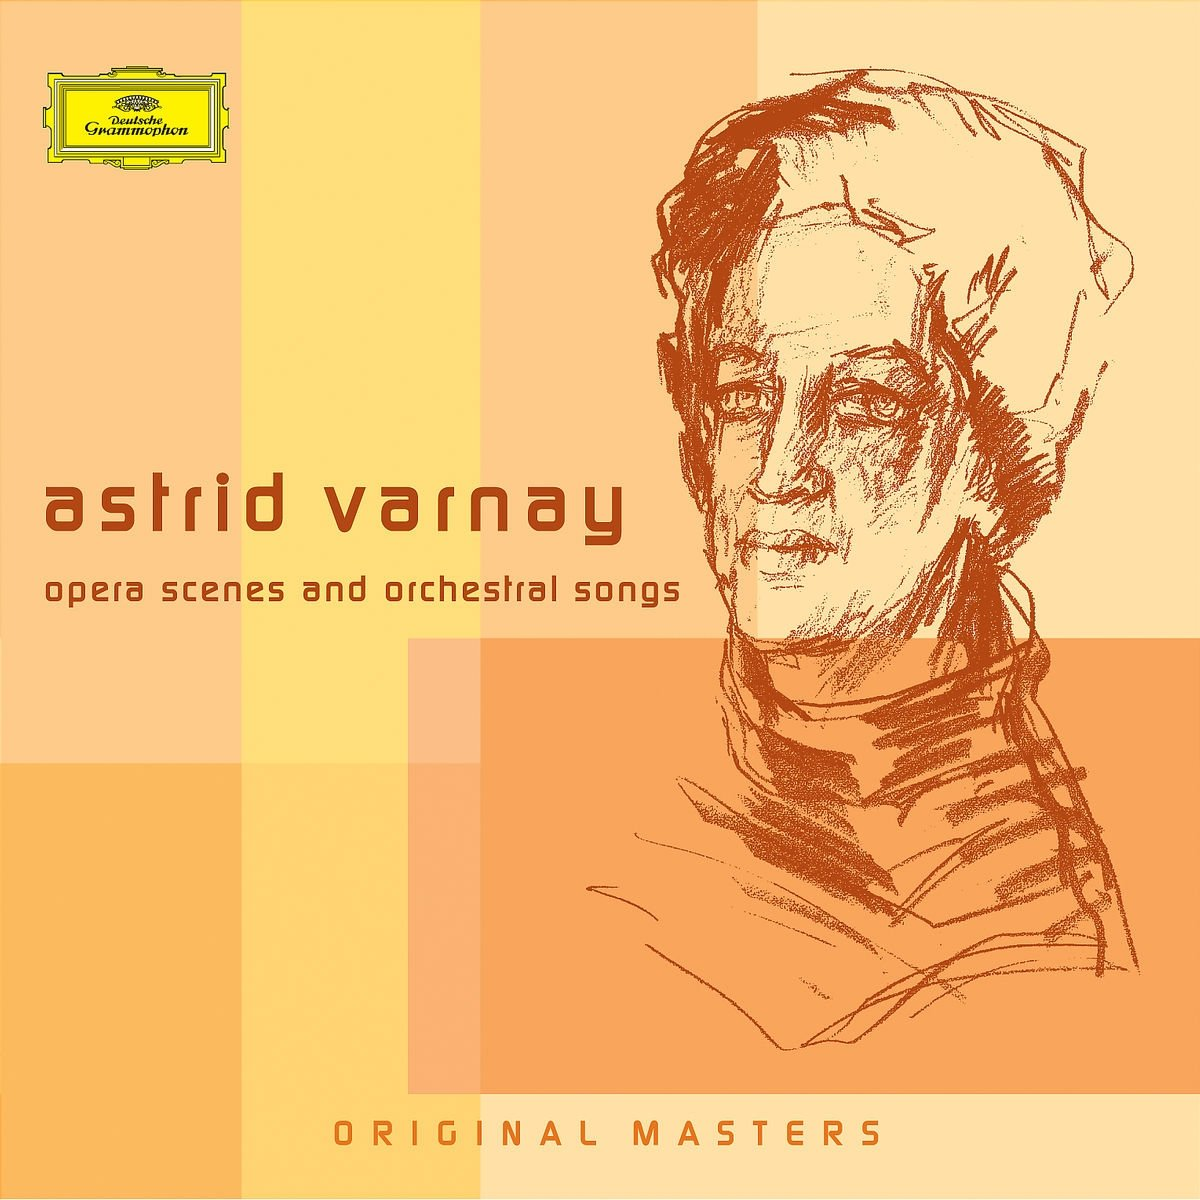 Astrid Varnay: Opera Scenes and Orchestral Songs by Deutsche Grammophon